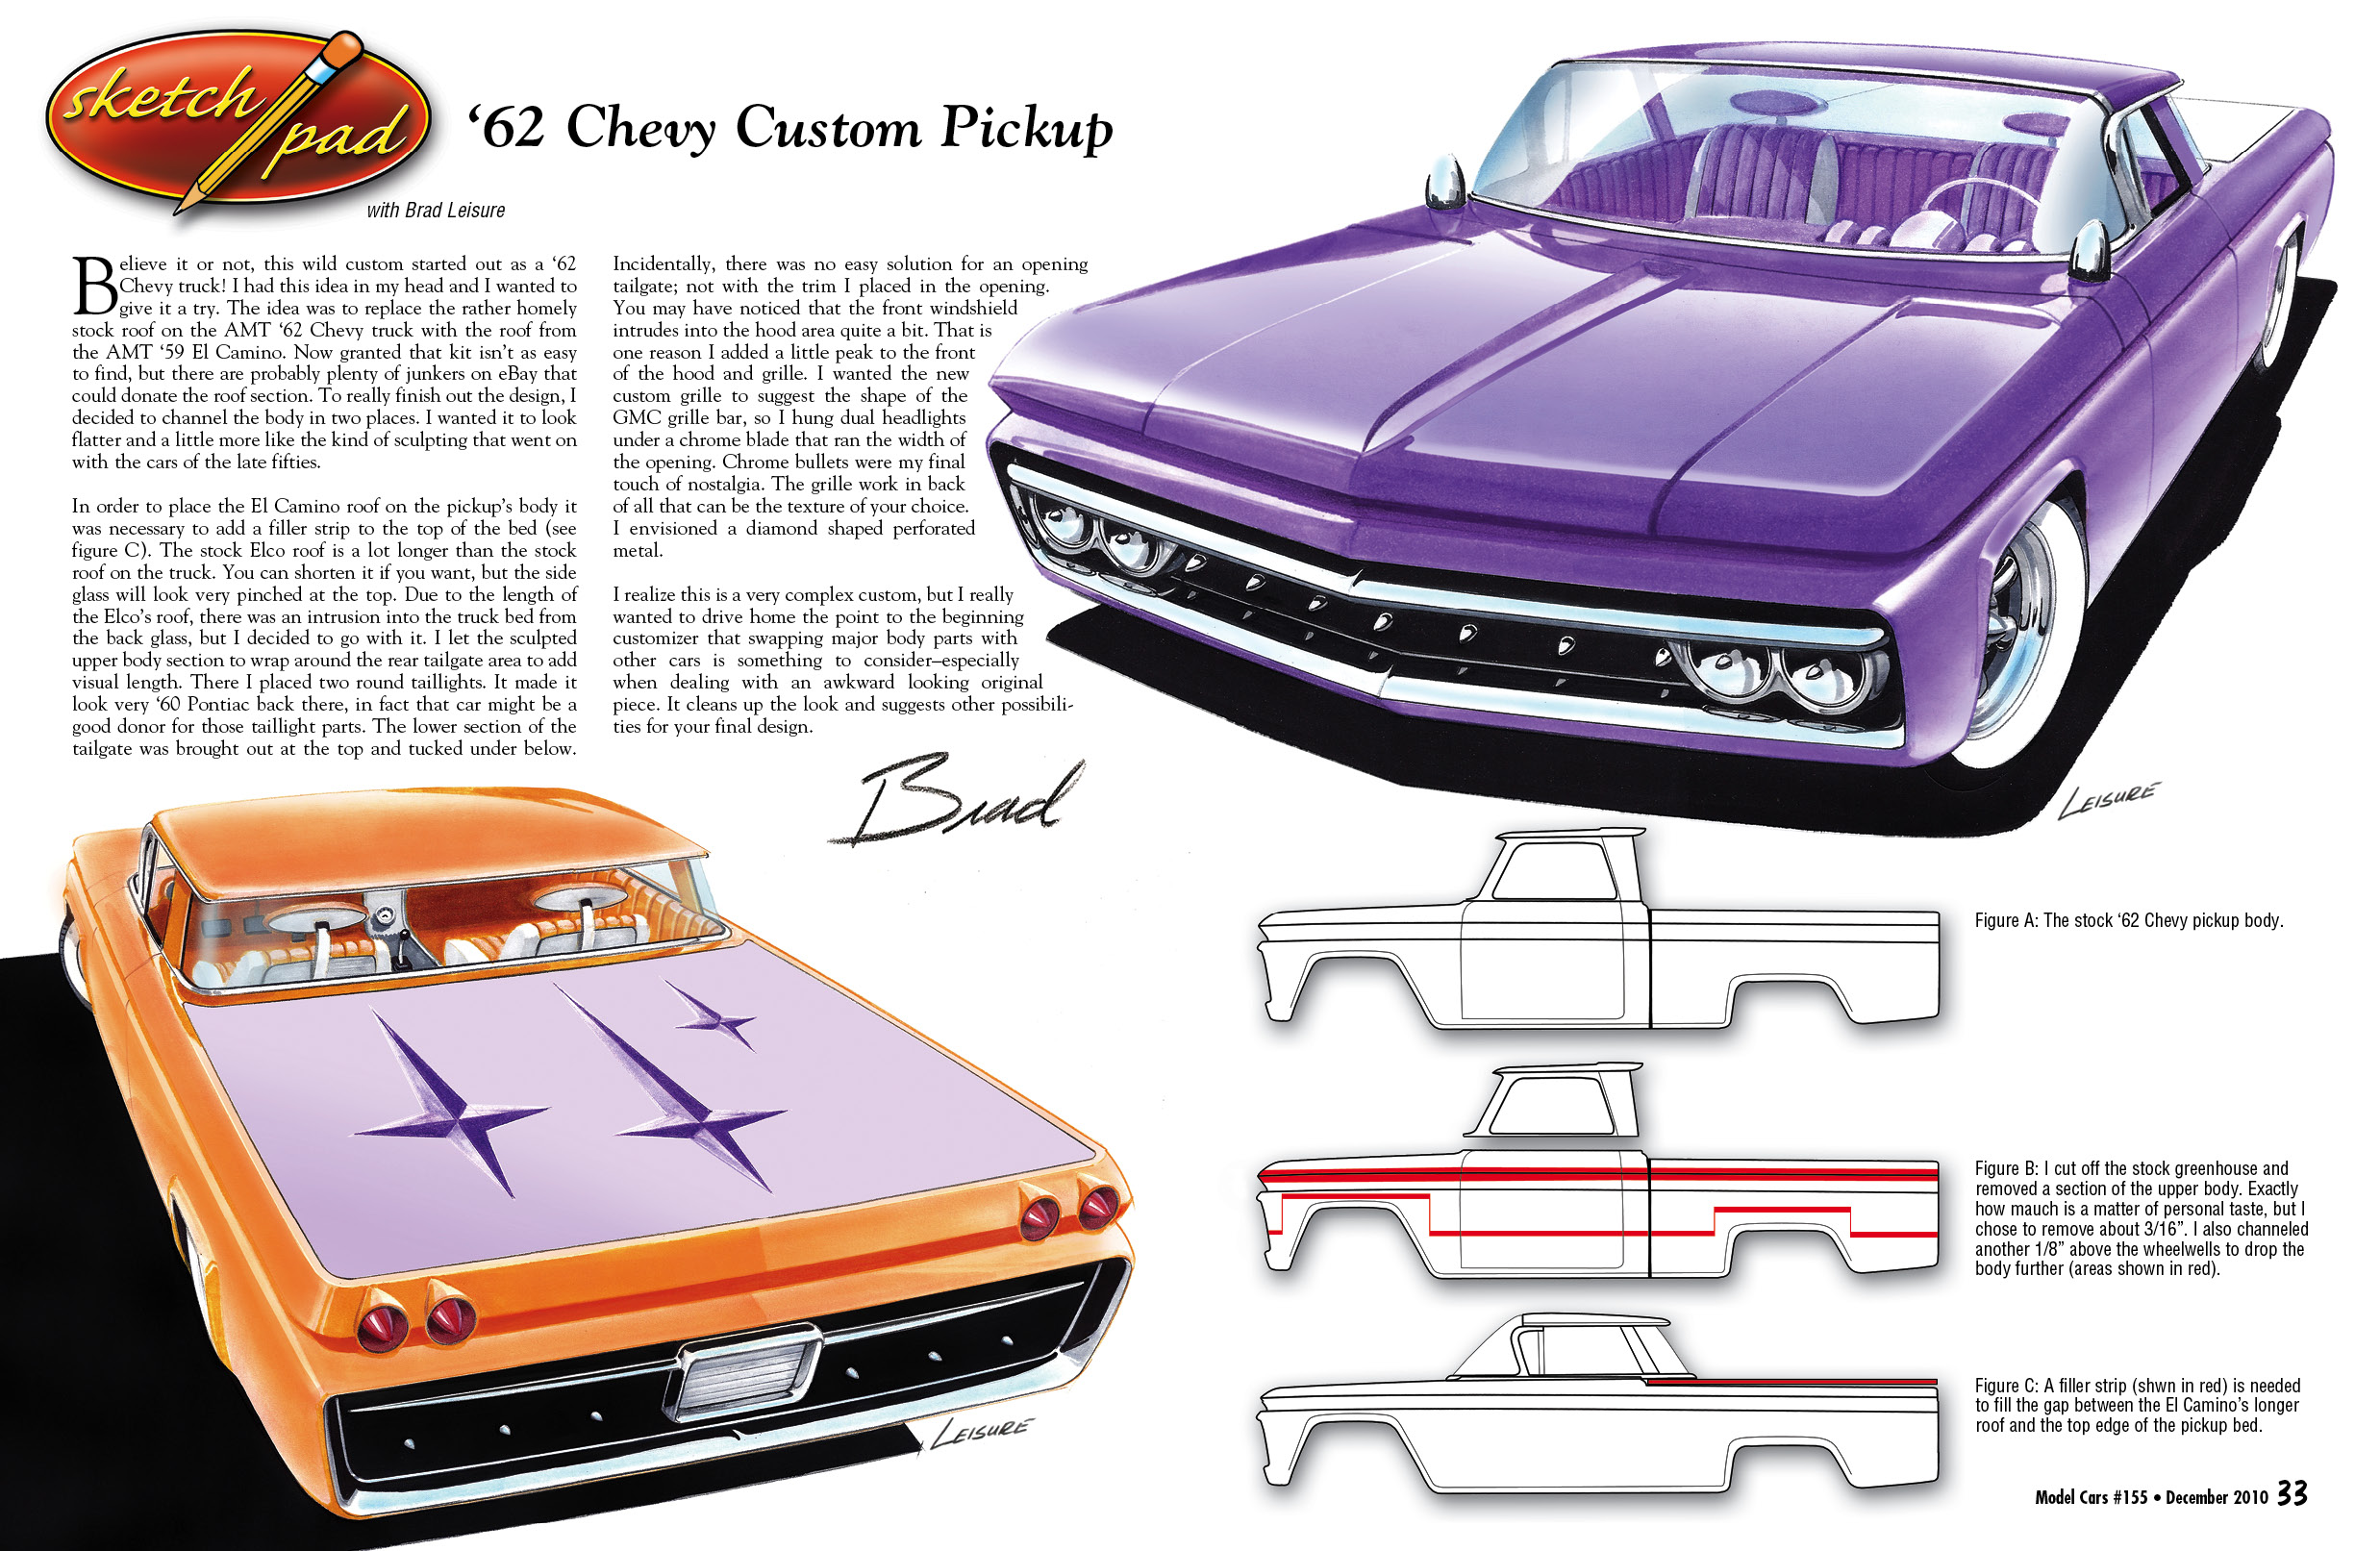 Sketchpad 155 model cars magazine for Sketchpad com